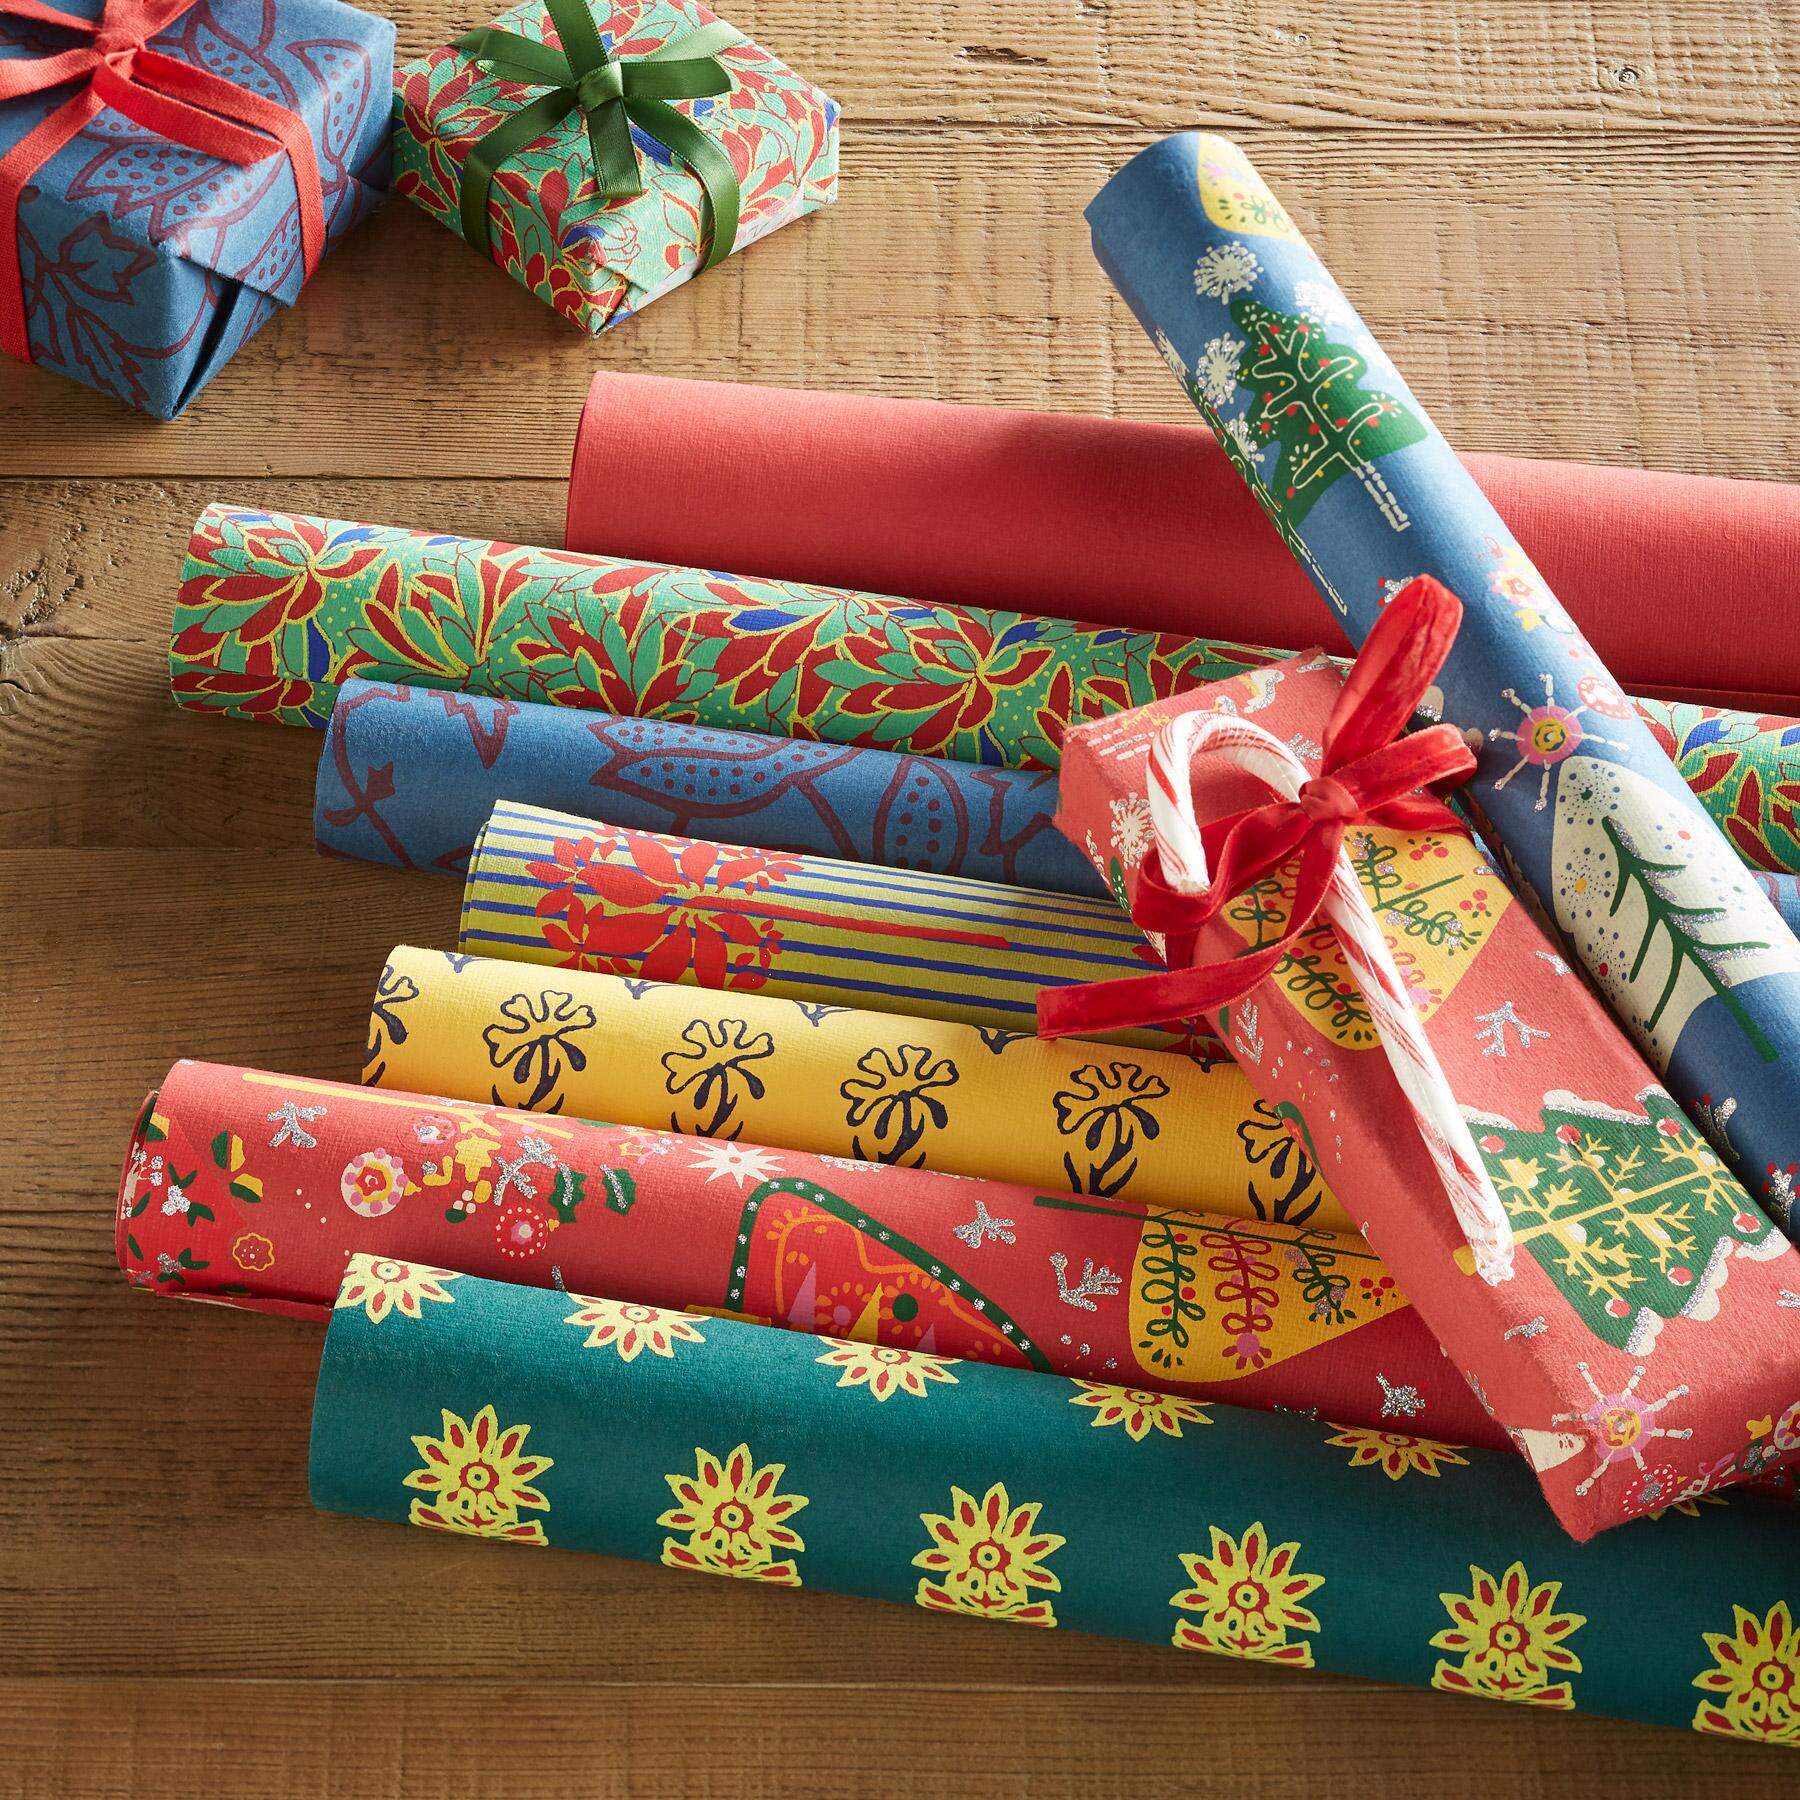 FESTIVE MIX WRAPPING PAPER, SET OF 8: View 1